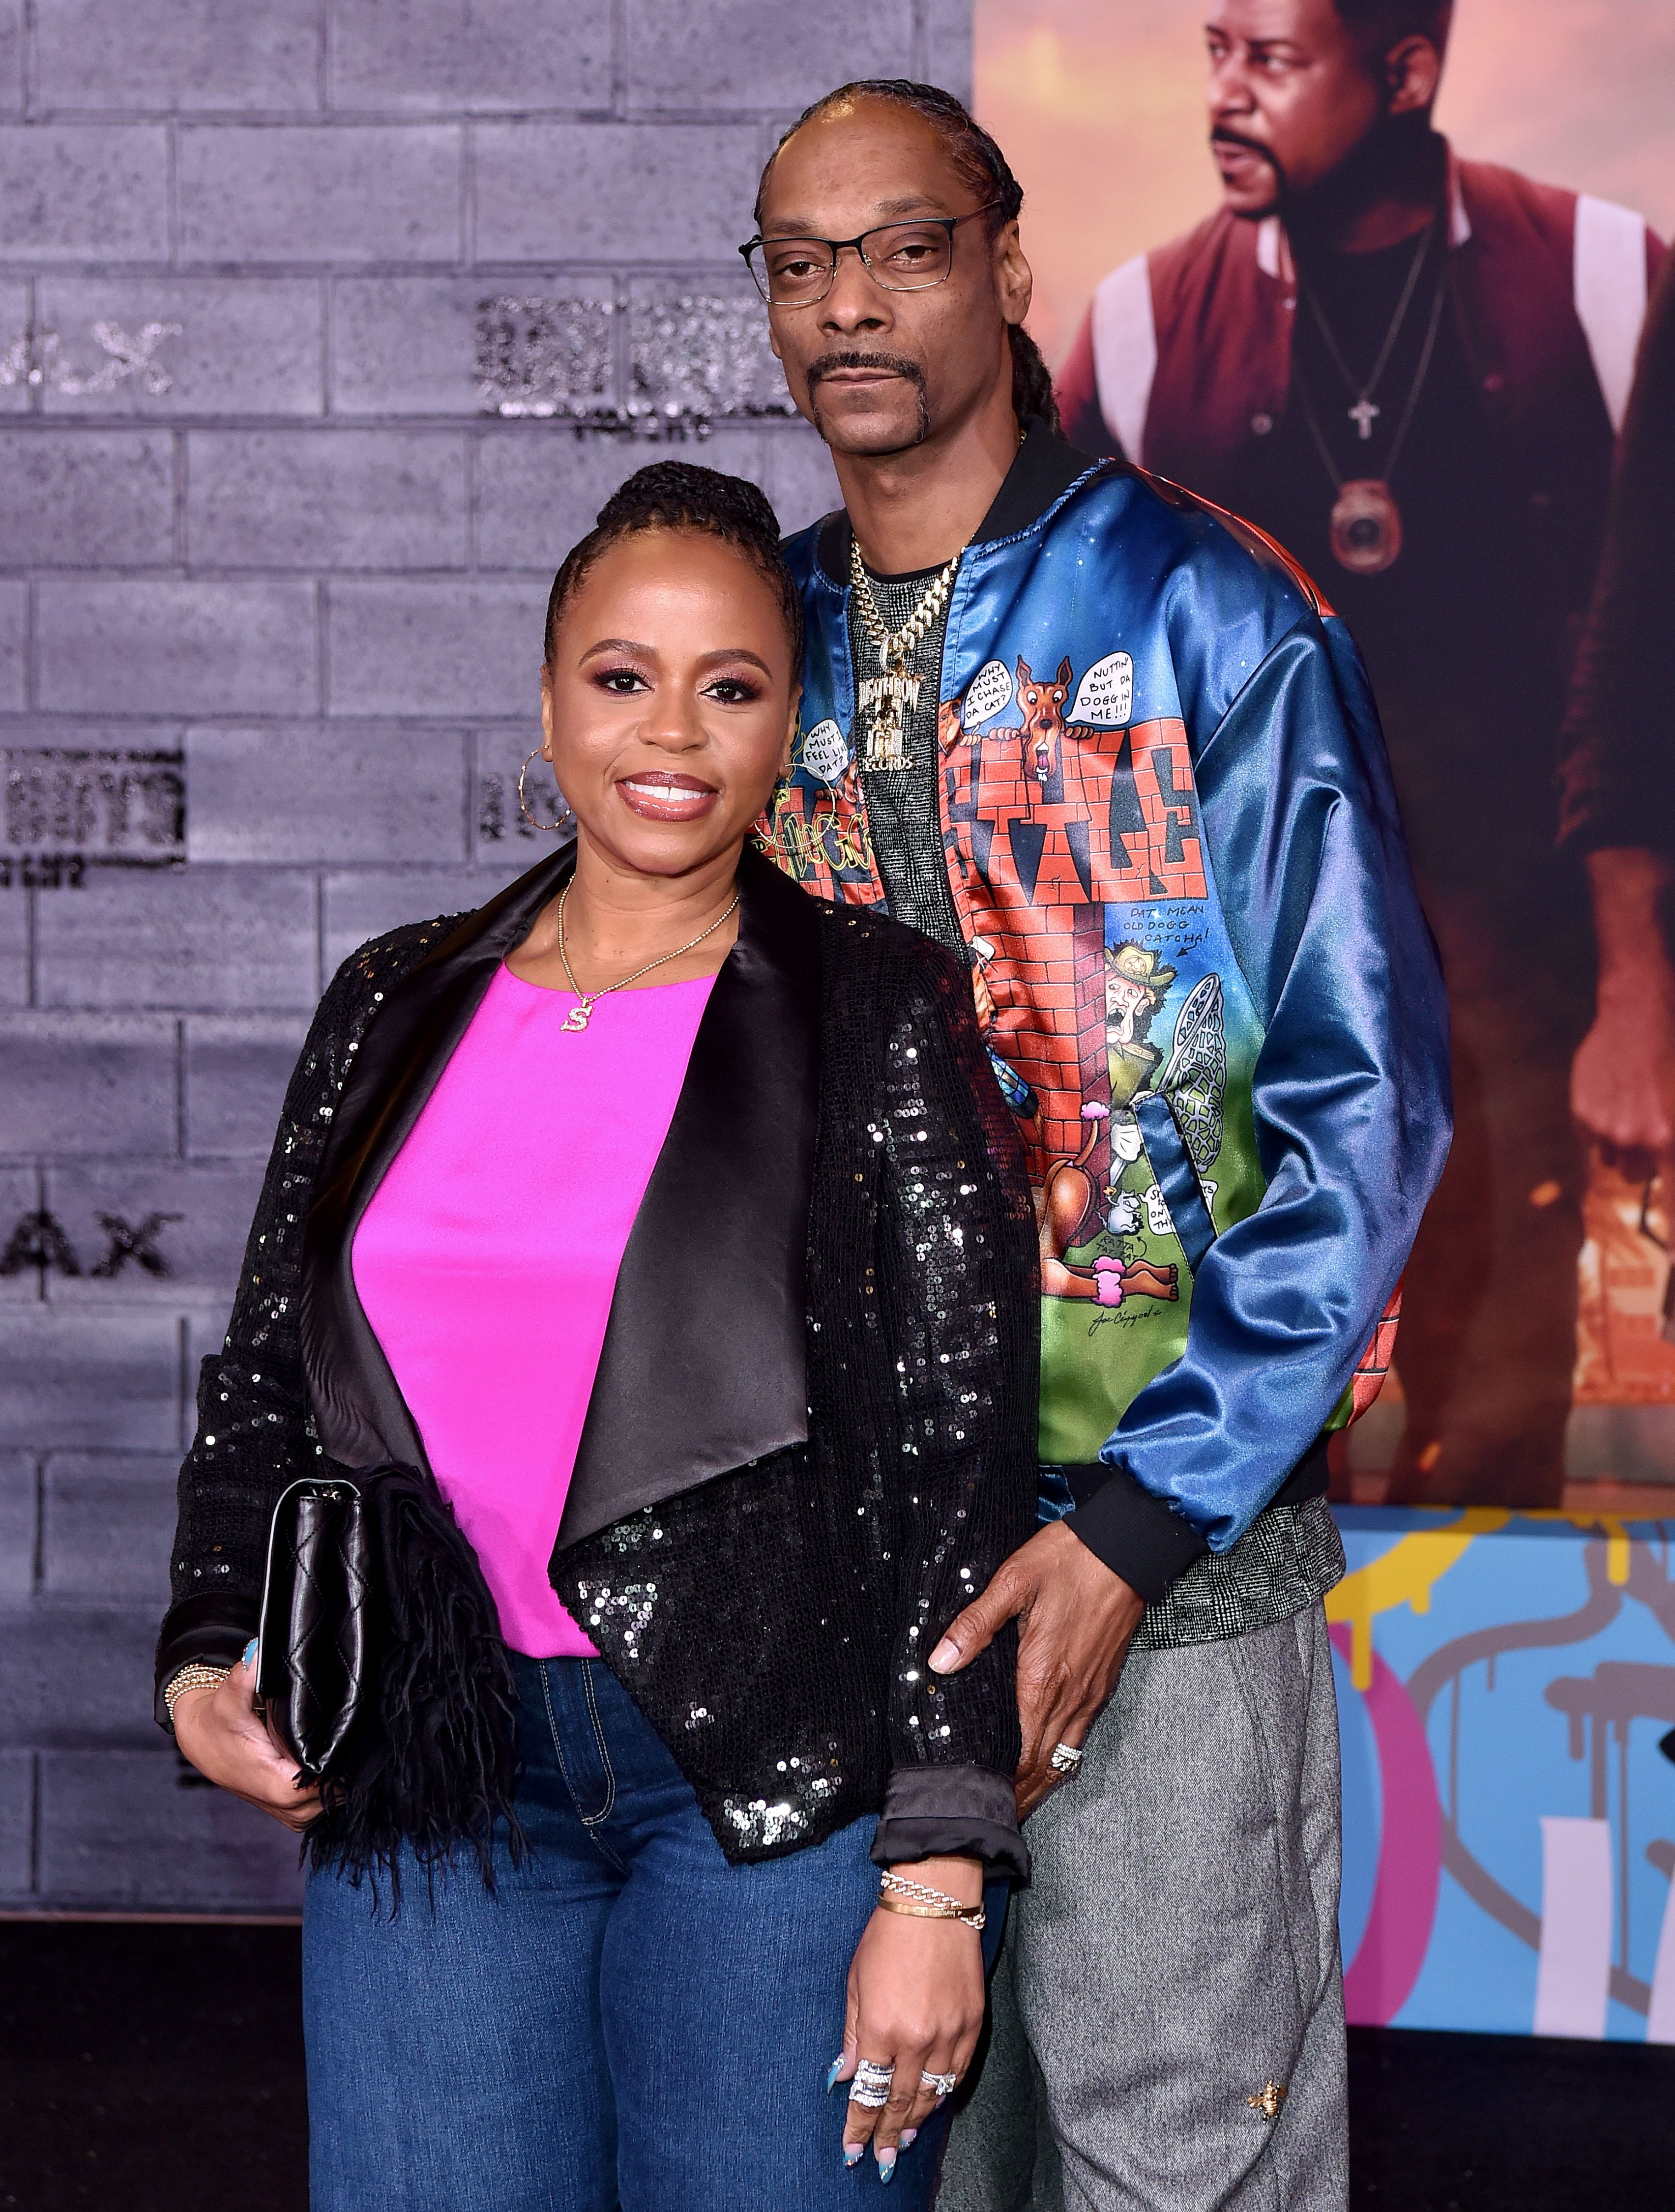 """Shante Broadus and Snoop Dogg during the premiere of Columbia Pictures' """"Bad Boys for Life"""" at TCL Chinese Theatre on January 14, 2020 in Hollywood, California.   Source: Getty Images"""